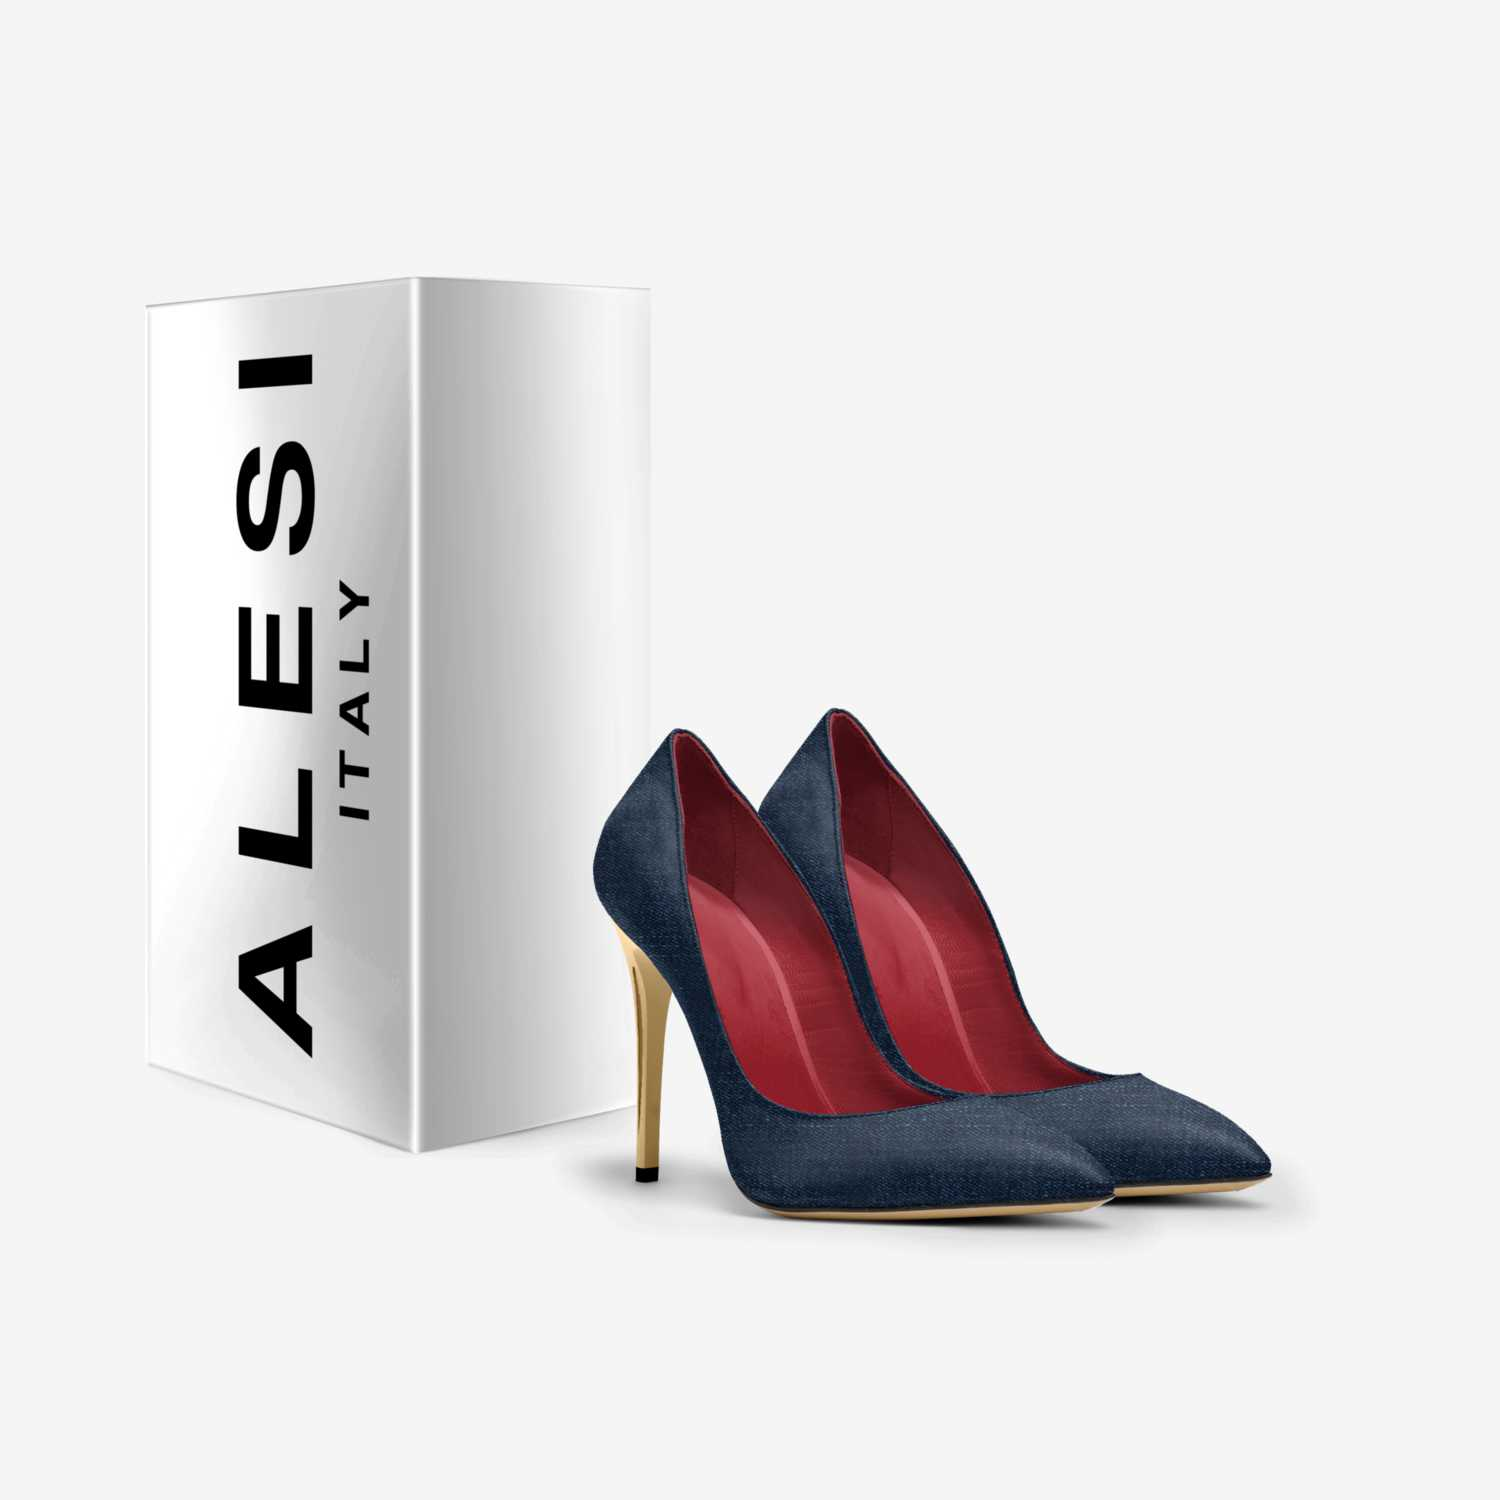 ALESI LUX HEELS custom made in Italy shoes by Lonanthony Parker | Box view